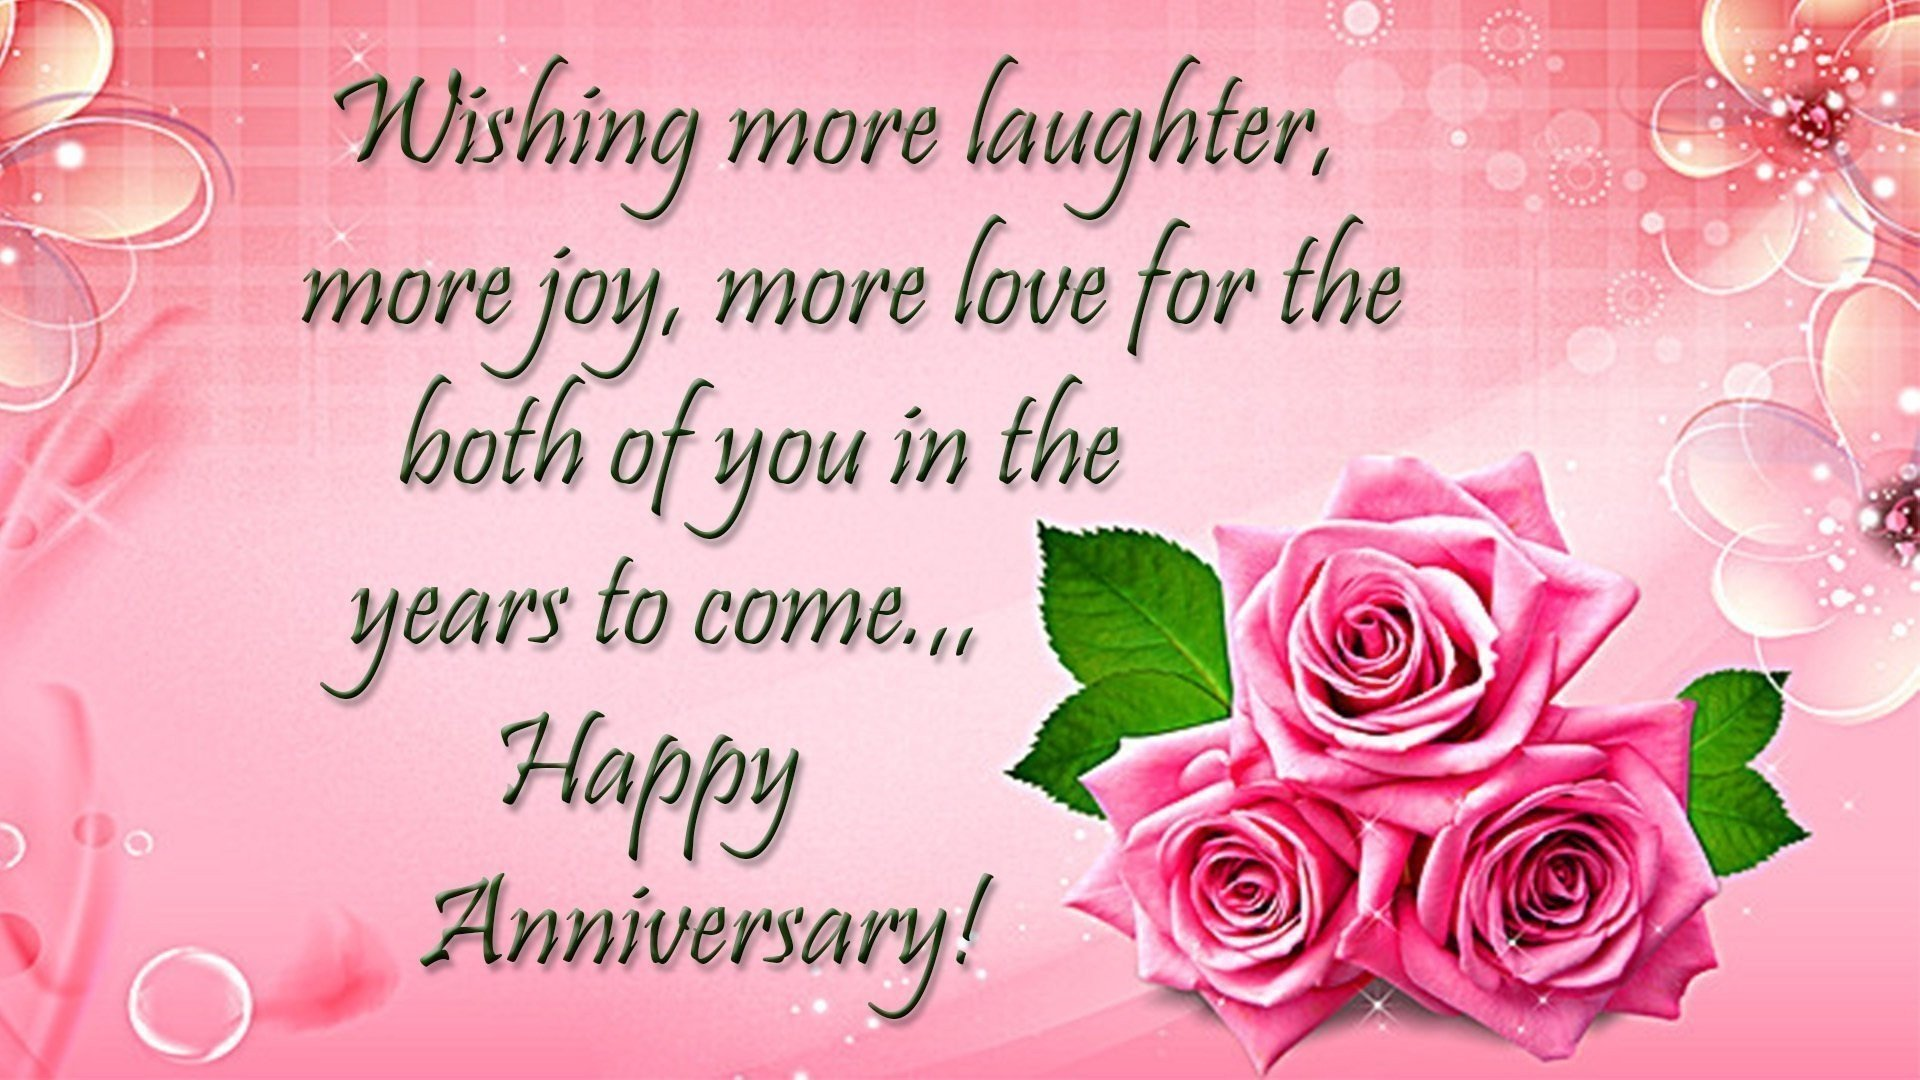 Inspiring Wedding Anniversary Wishes